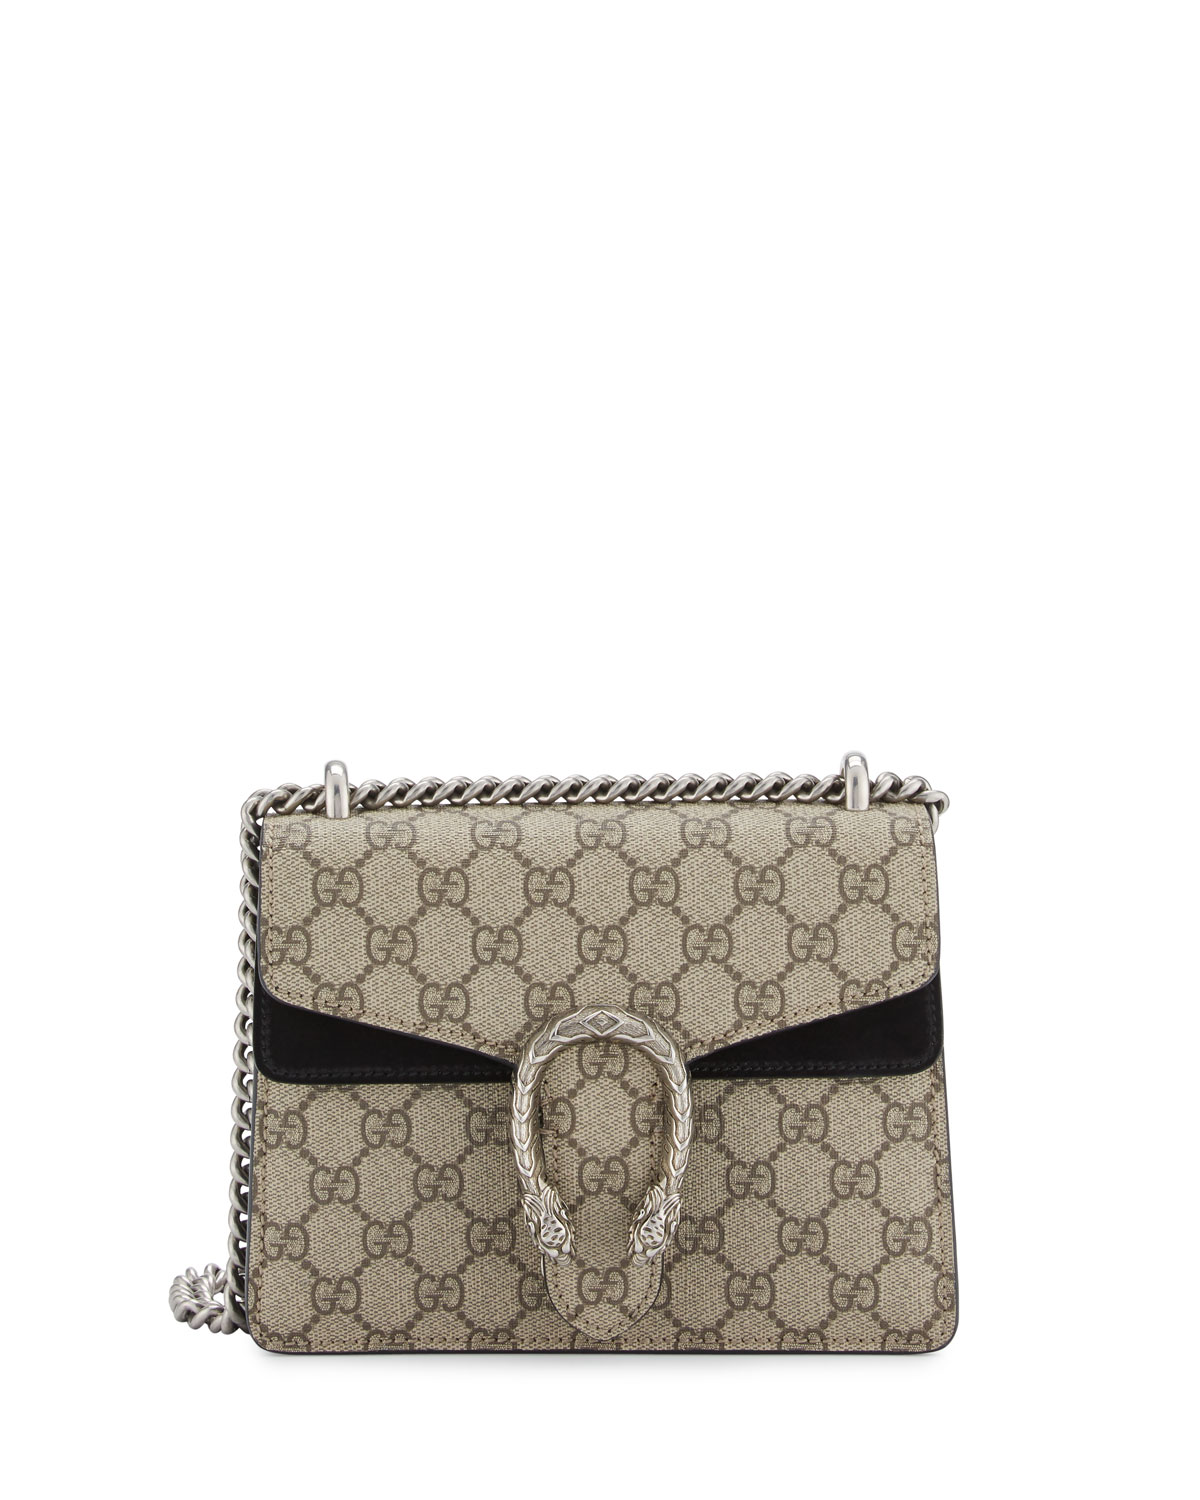 Gucci Dionysus Gg Supreme Mini Shoulder Bag Beige Black